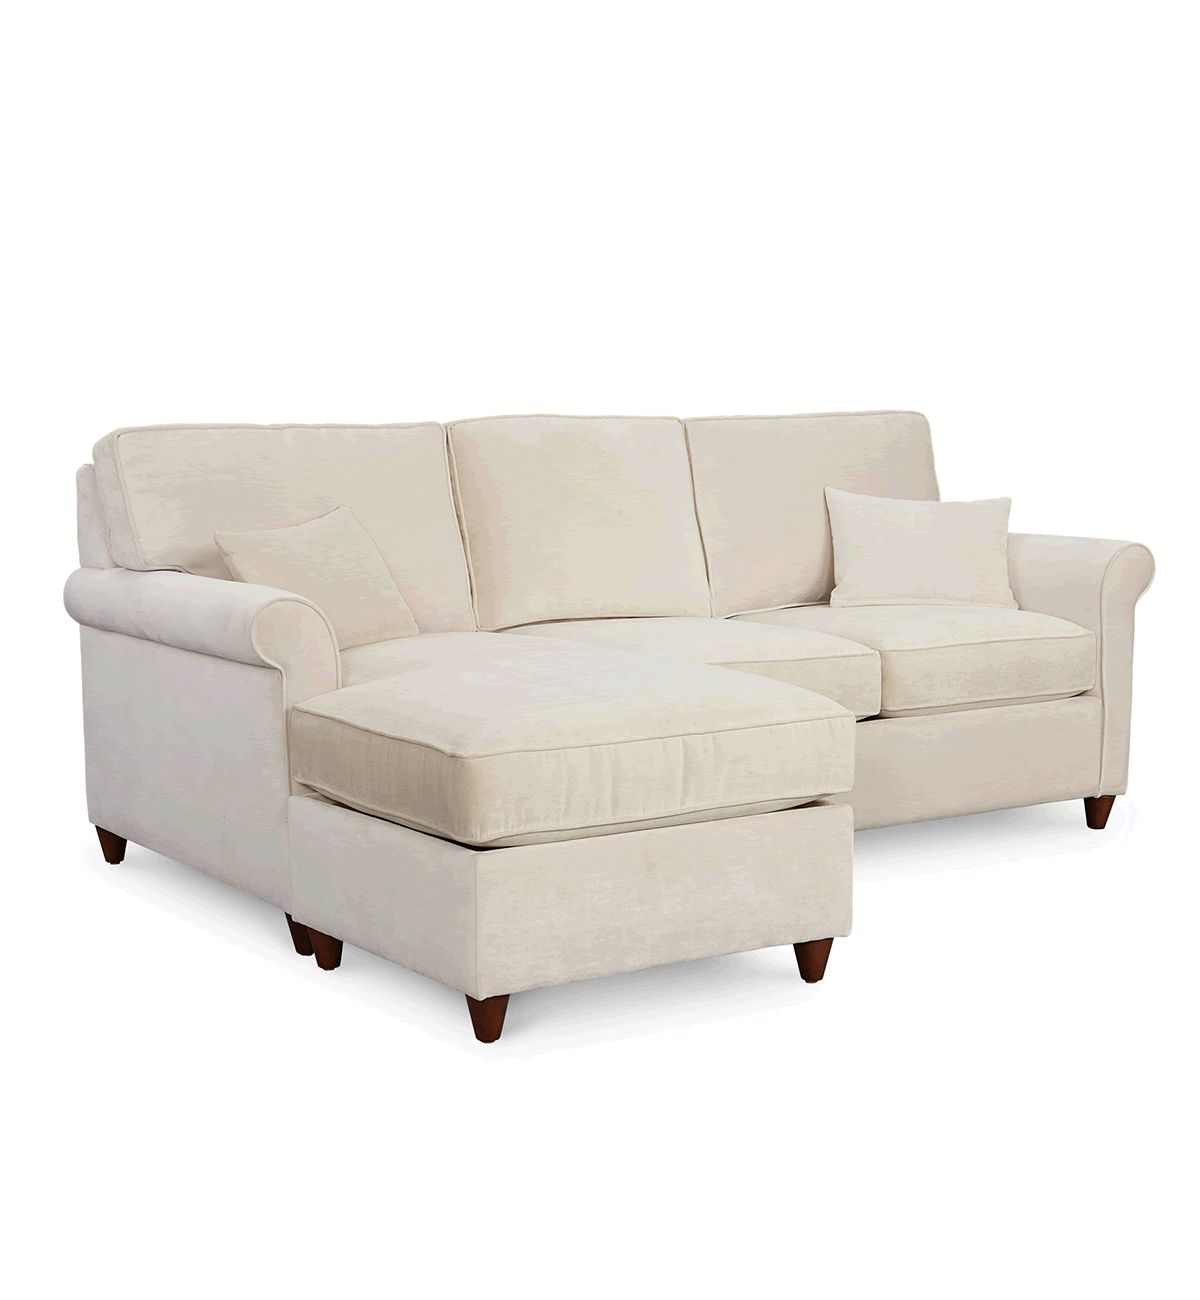 Macys Furniture Clearance: Leather Sofas & Couches